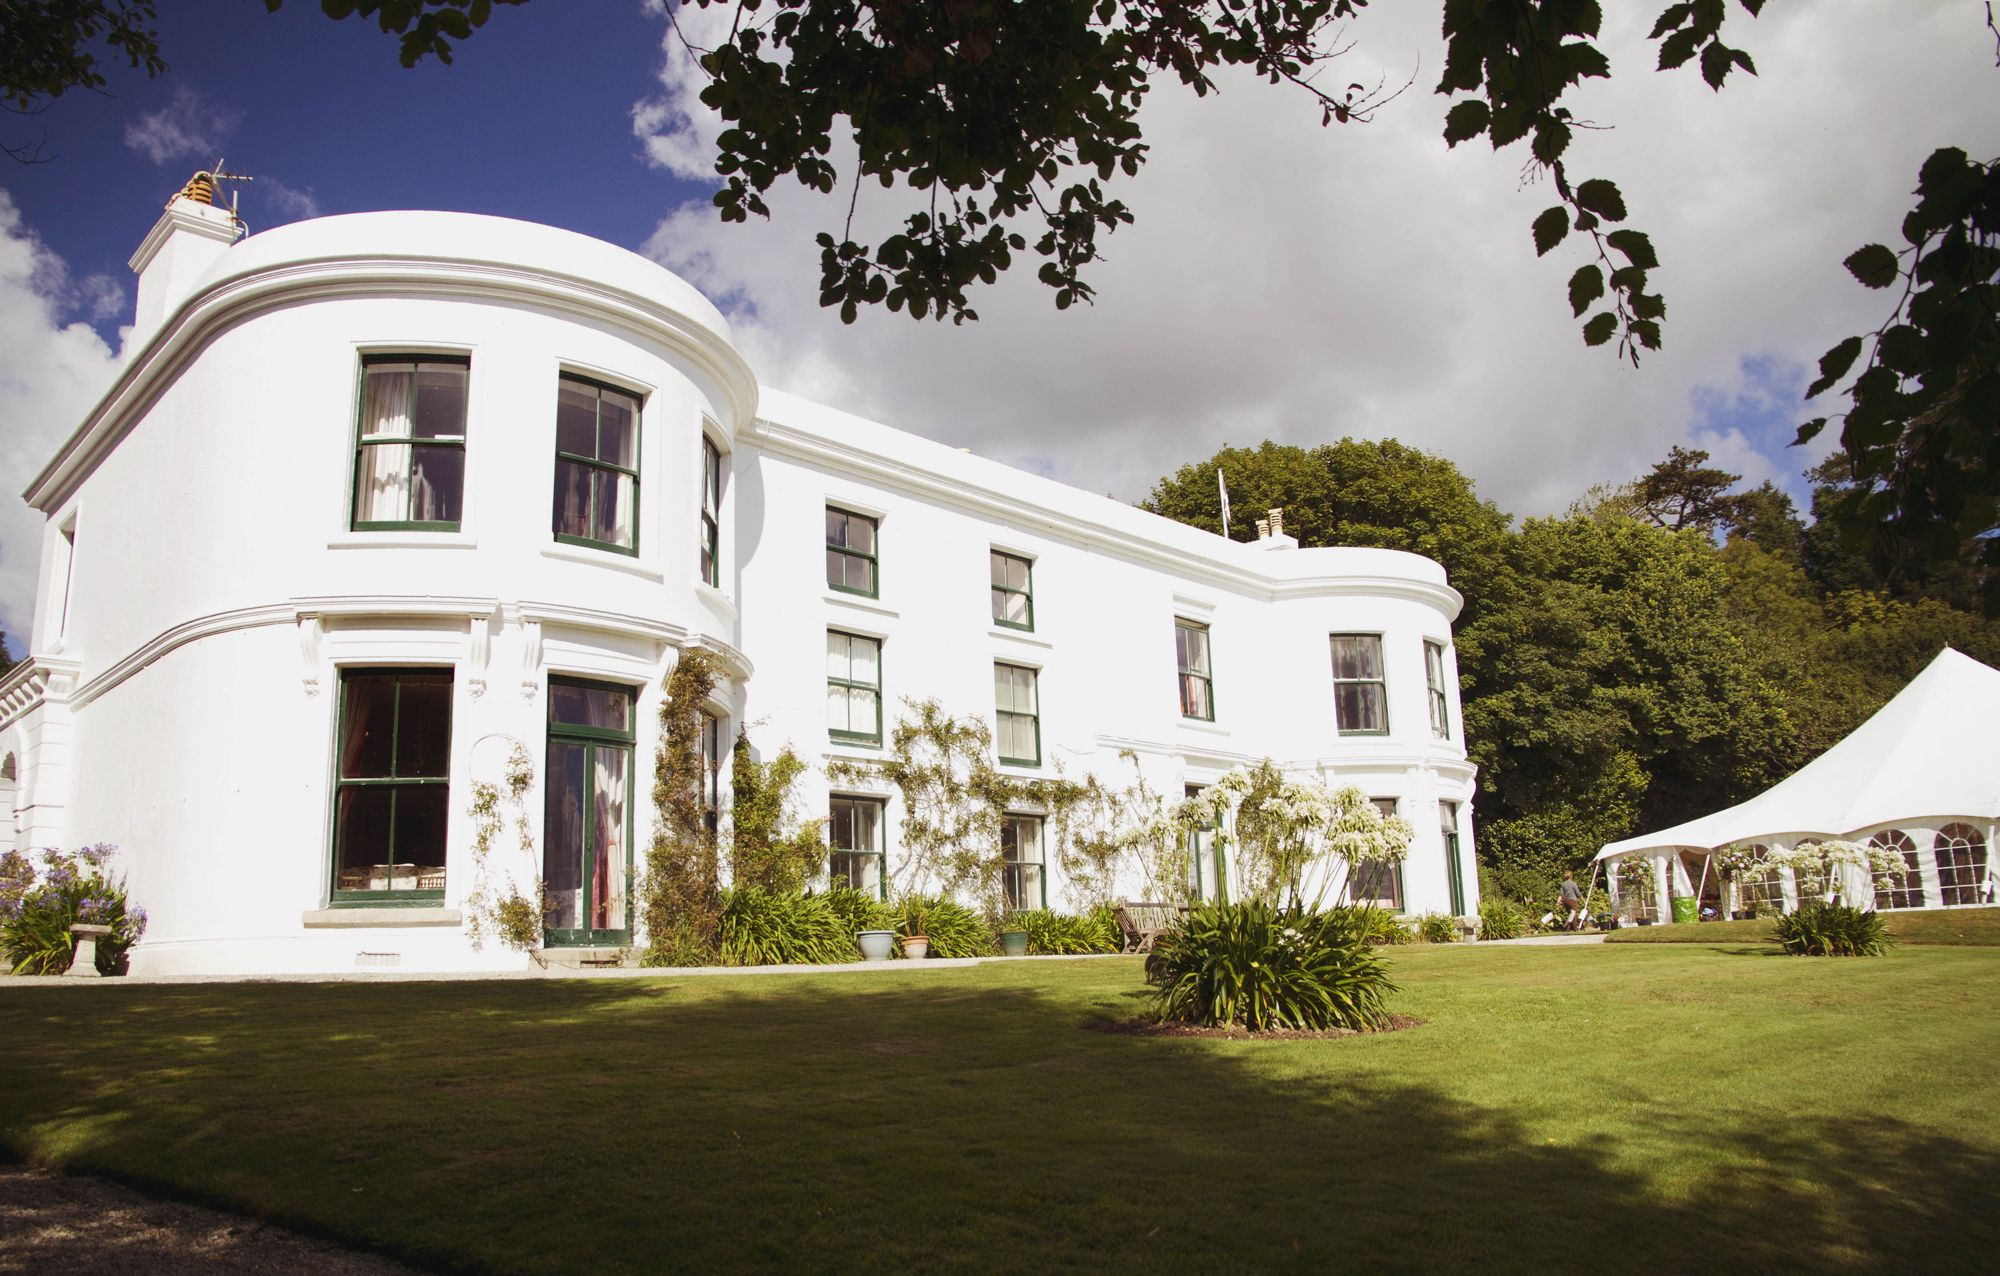 Cornwall's Grandest Self-Catering Option With